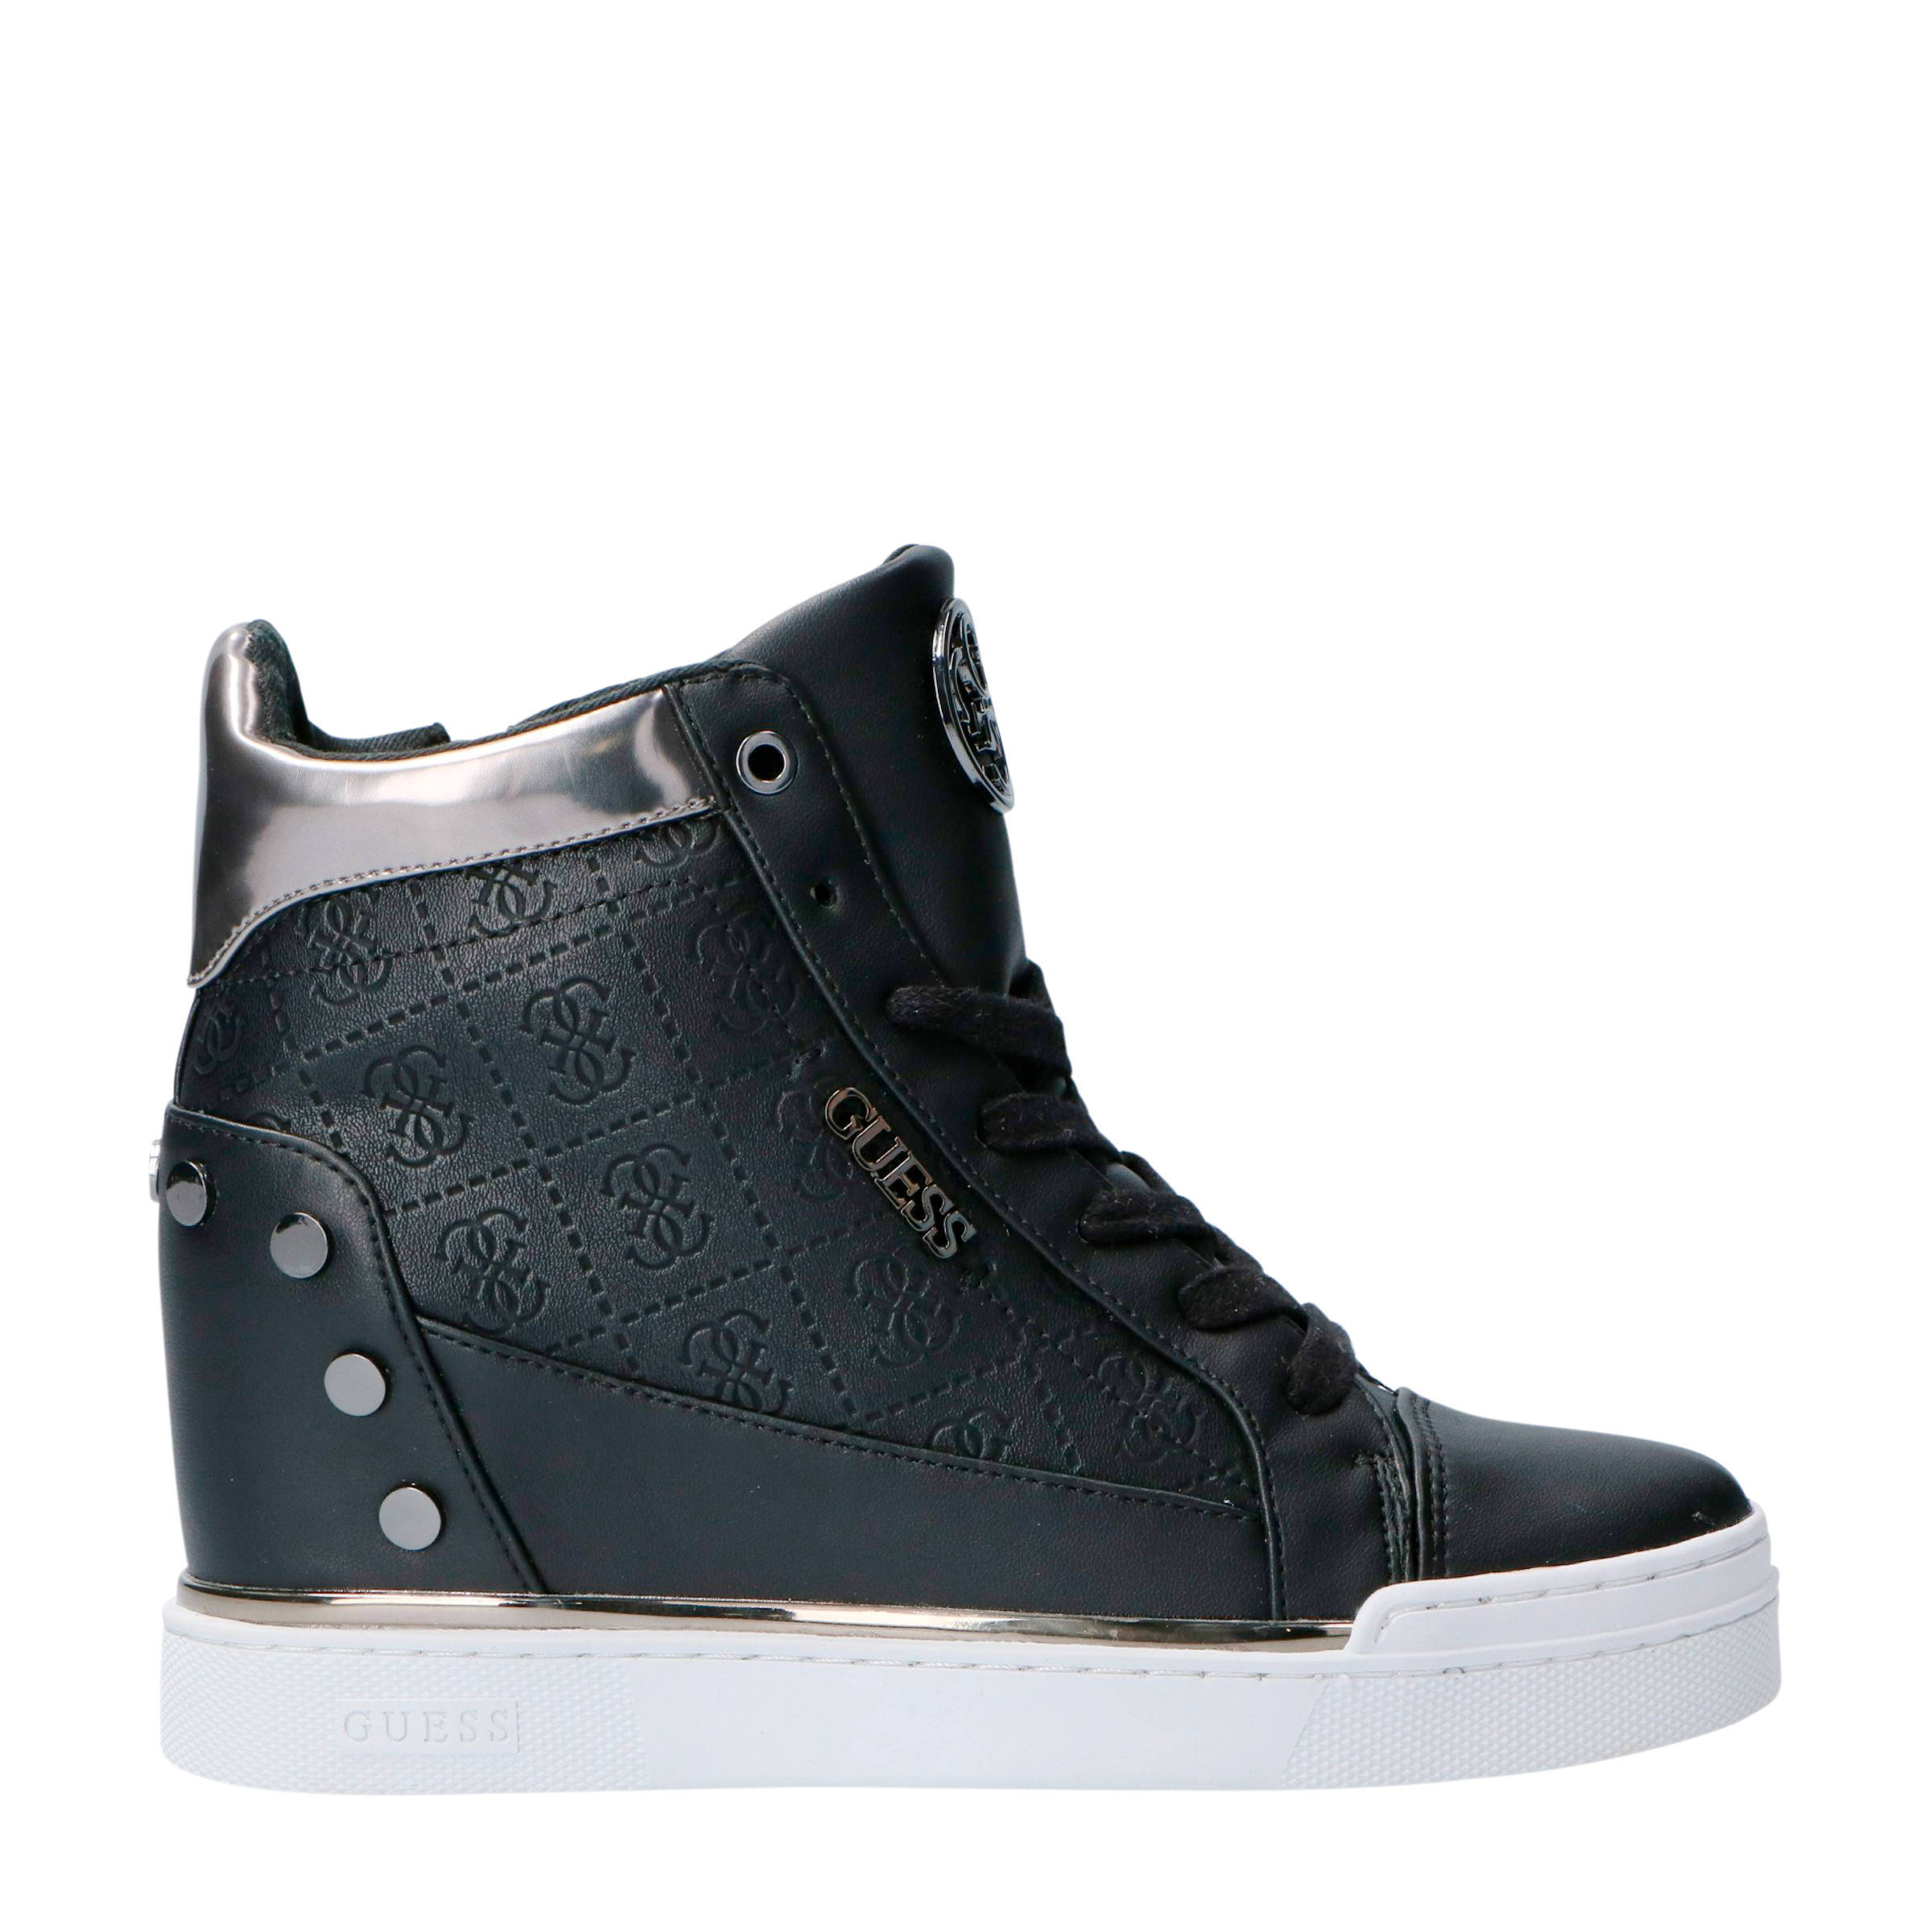 58461425cd20d GUESS Finly wedge sneakers zwart